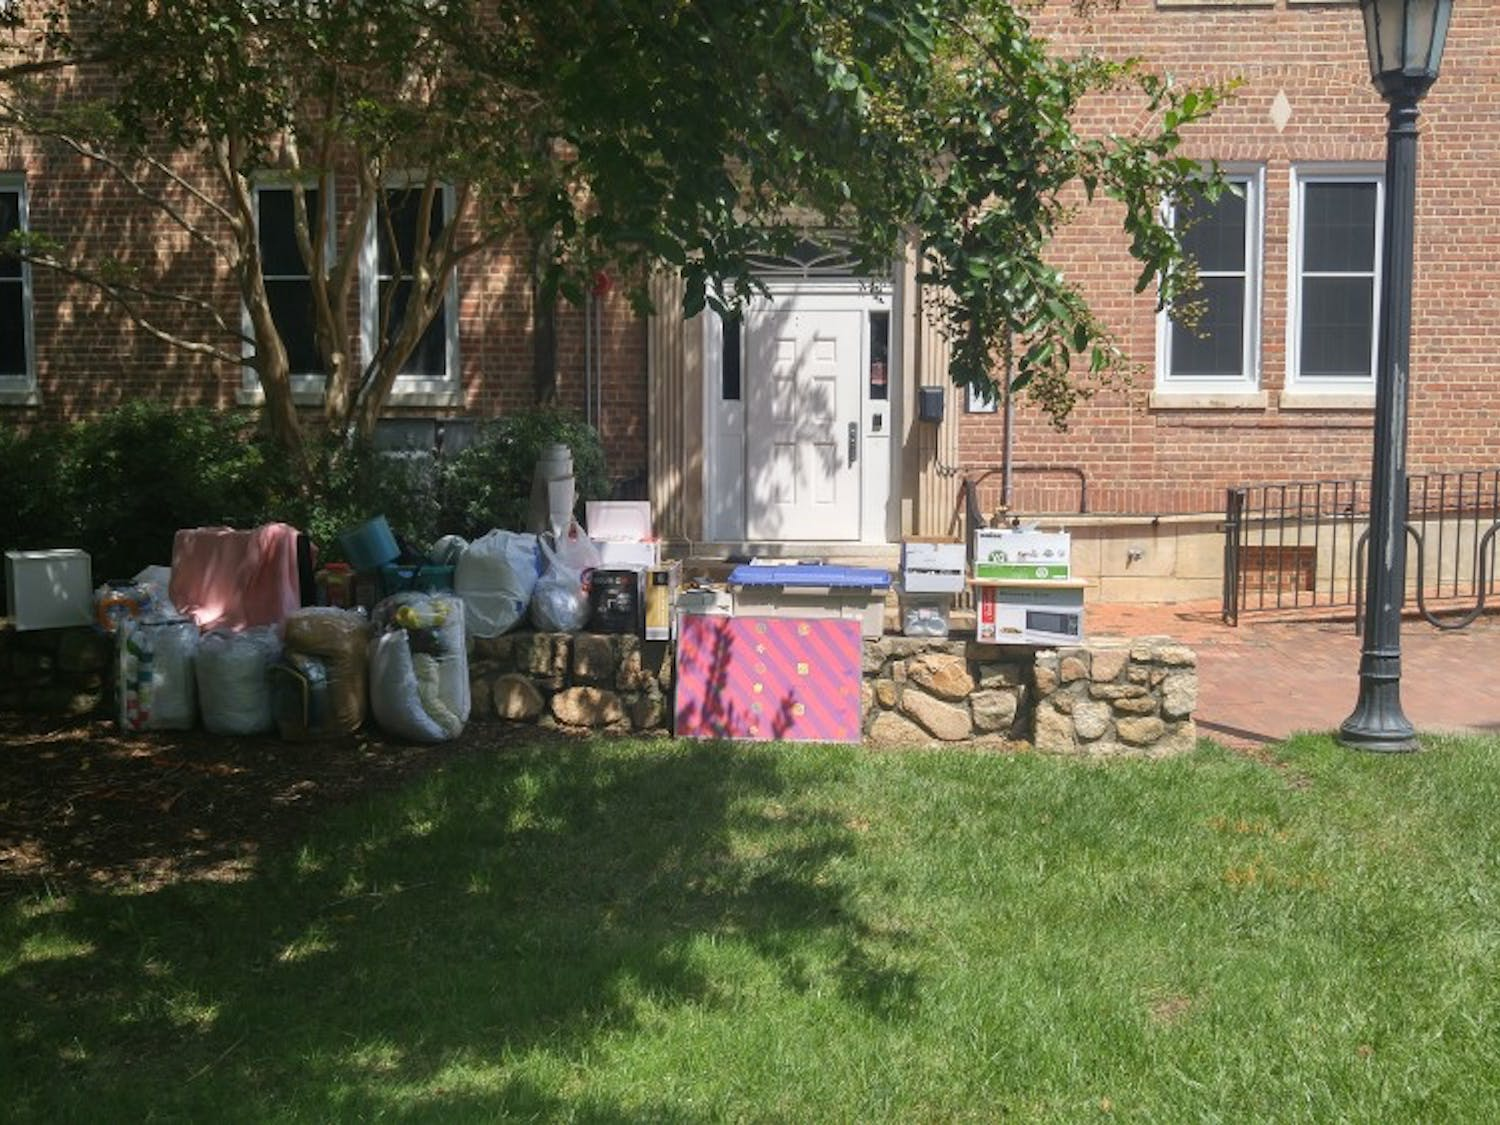 Dorm decor stacks up outside as students move in.